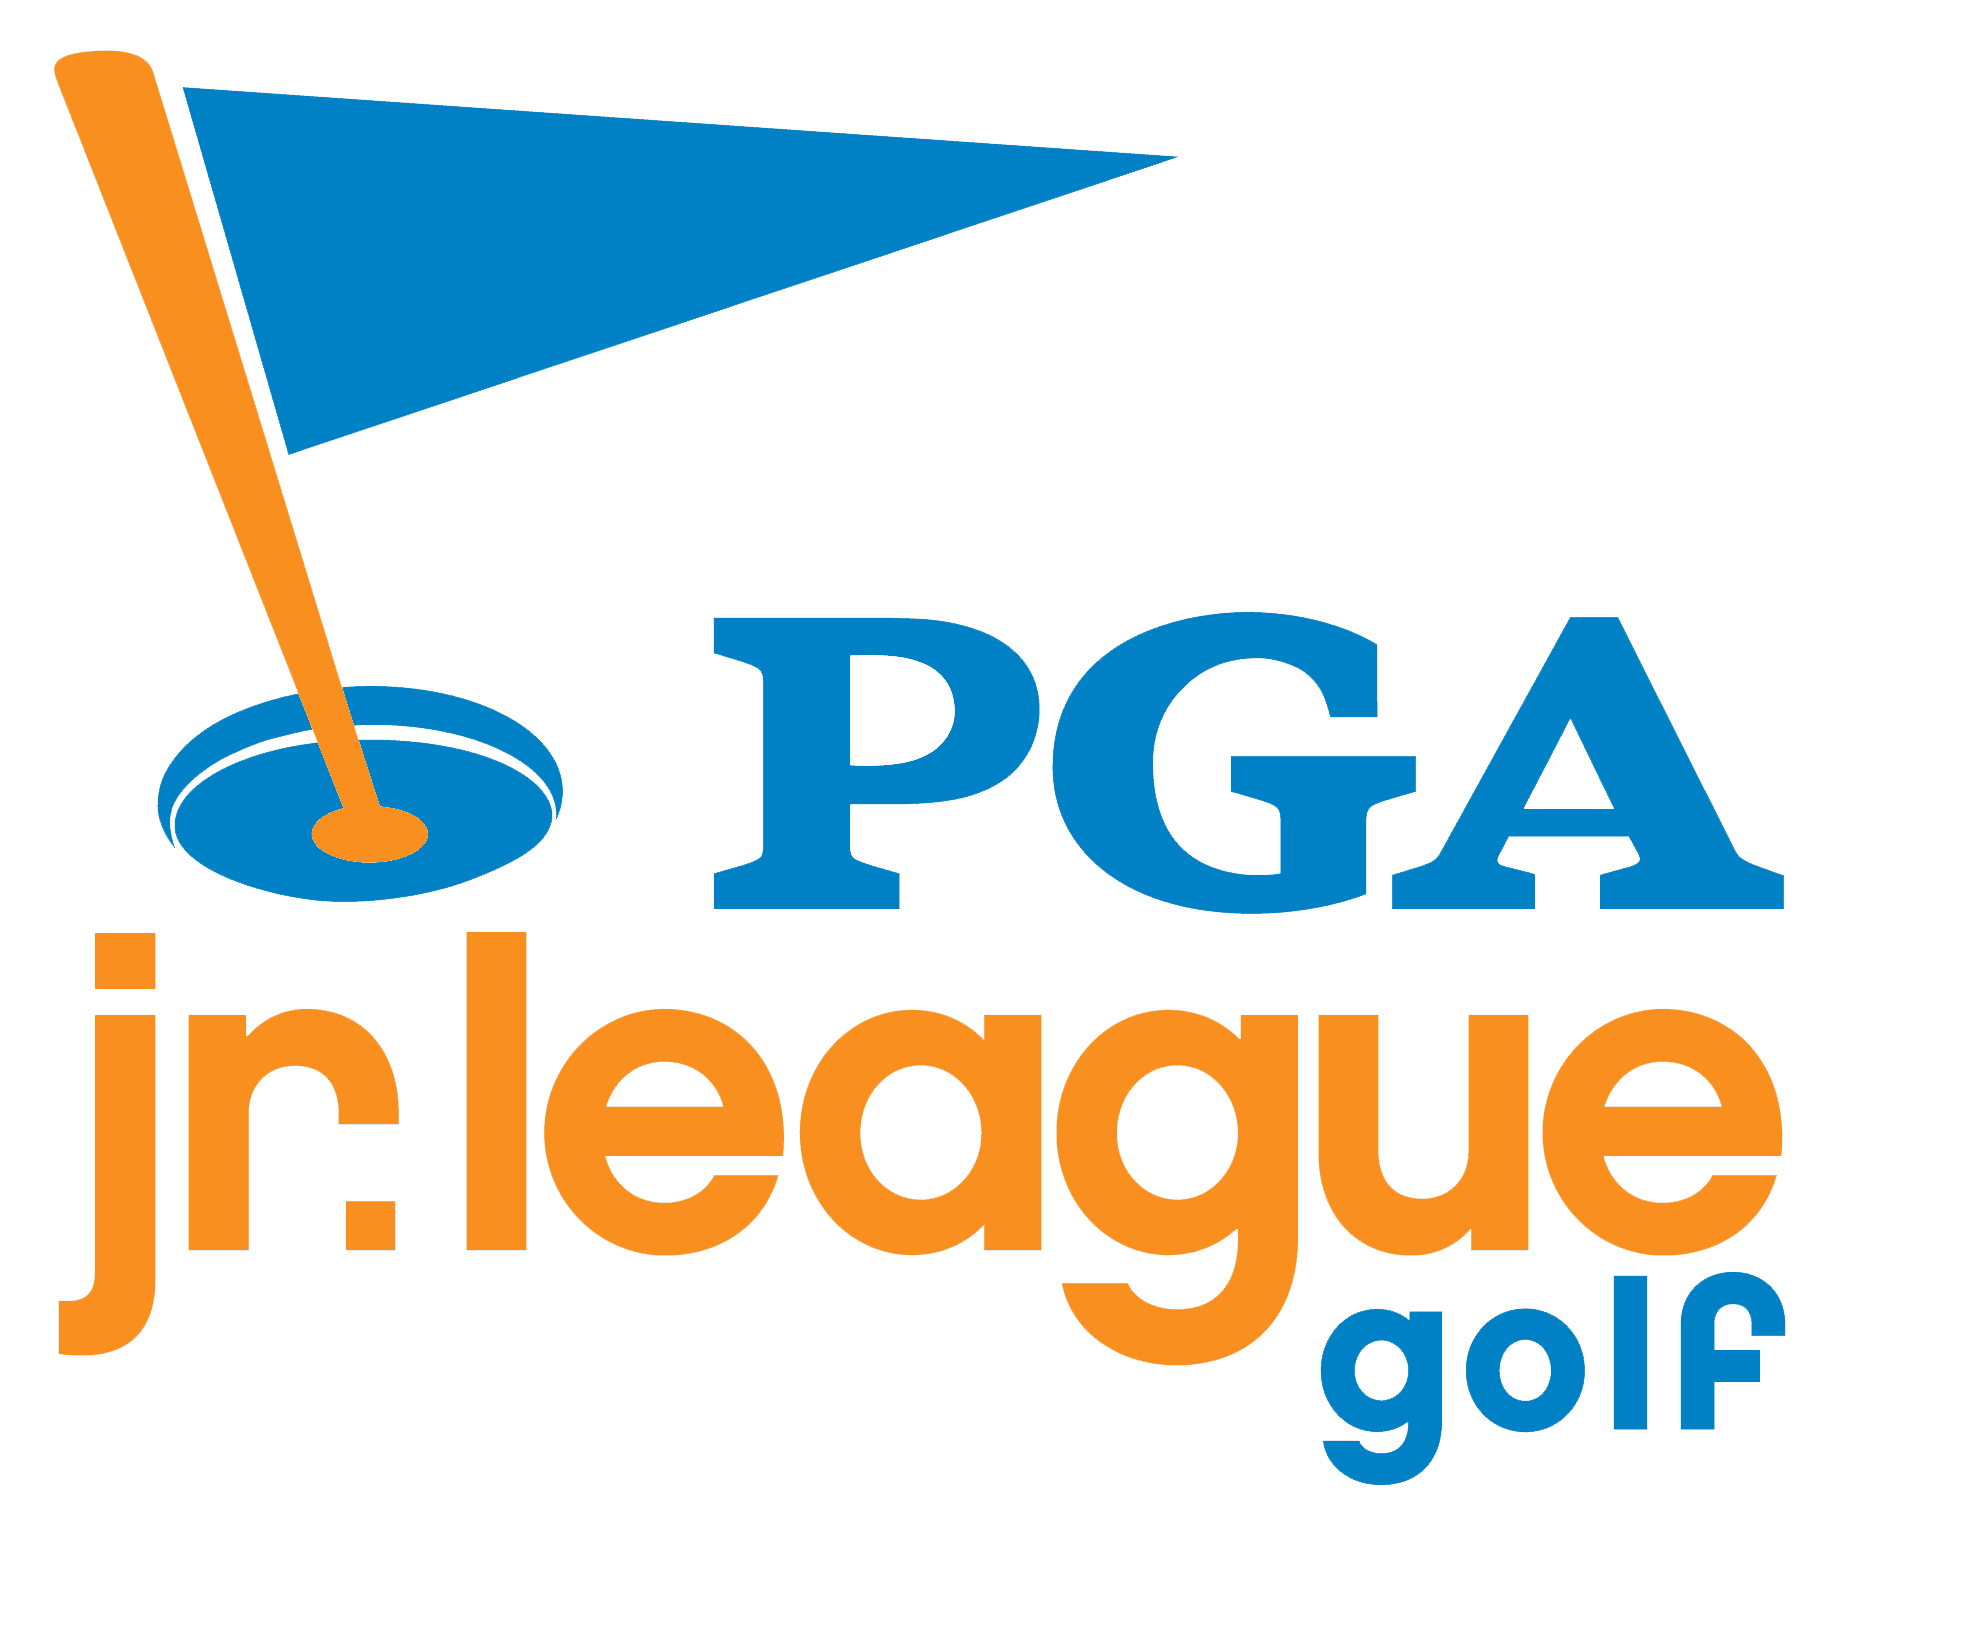 PGA Jr League Golf Logo